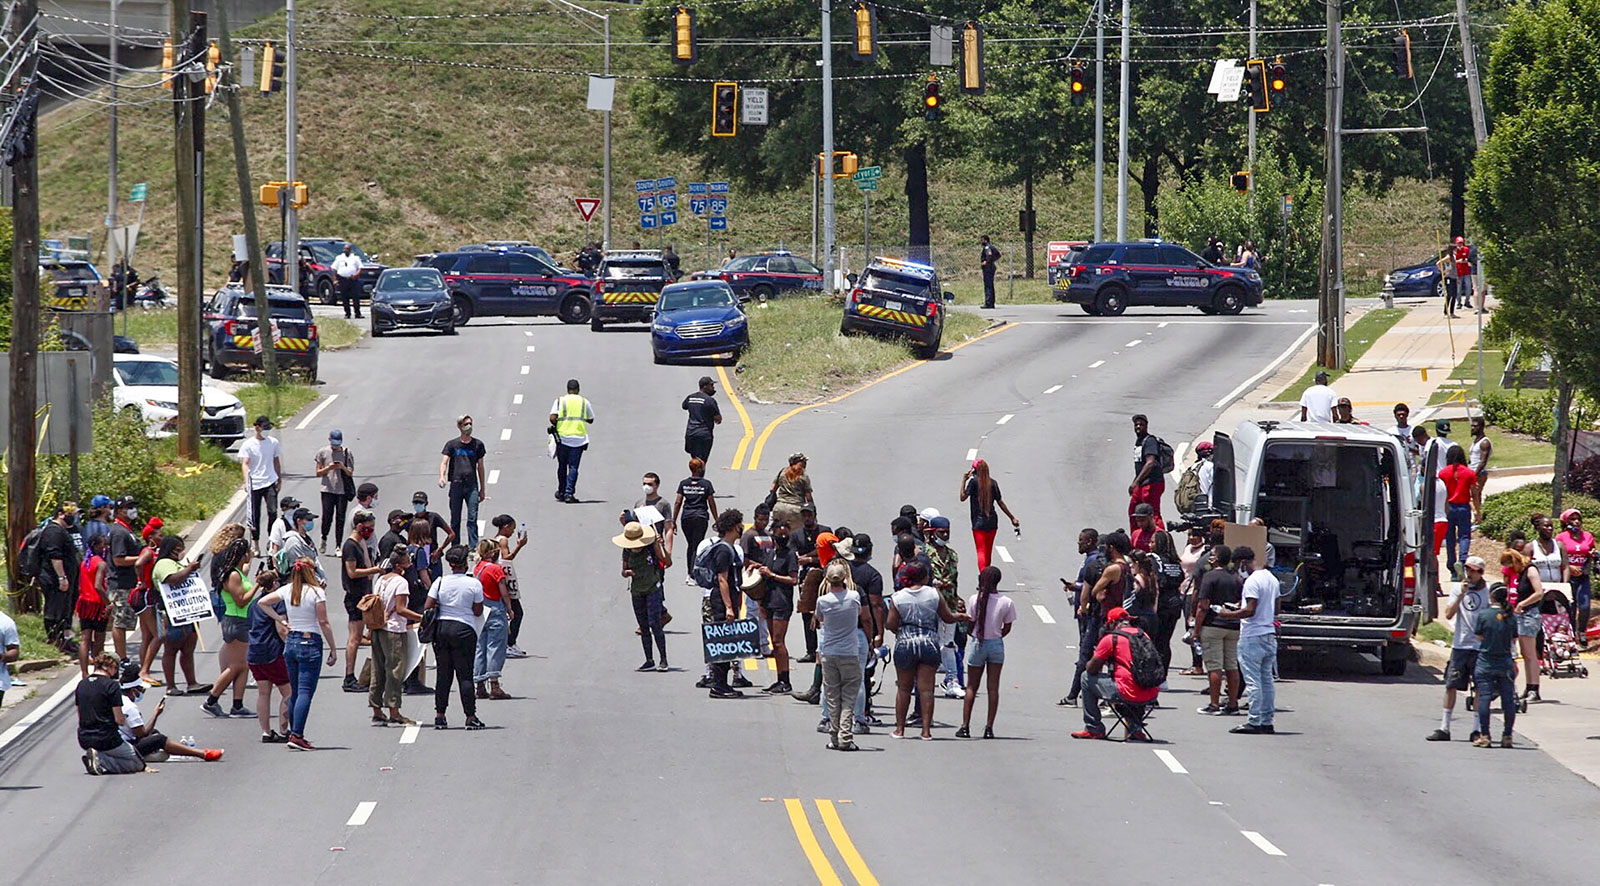 Protesters block University Avenue near the Wendy's fast food restaurant where Rayshard Brooks was shot and killed by Atlanta police on Friday evening.